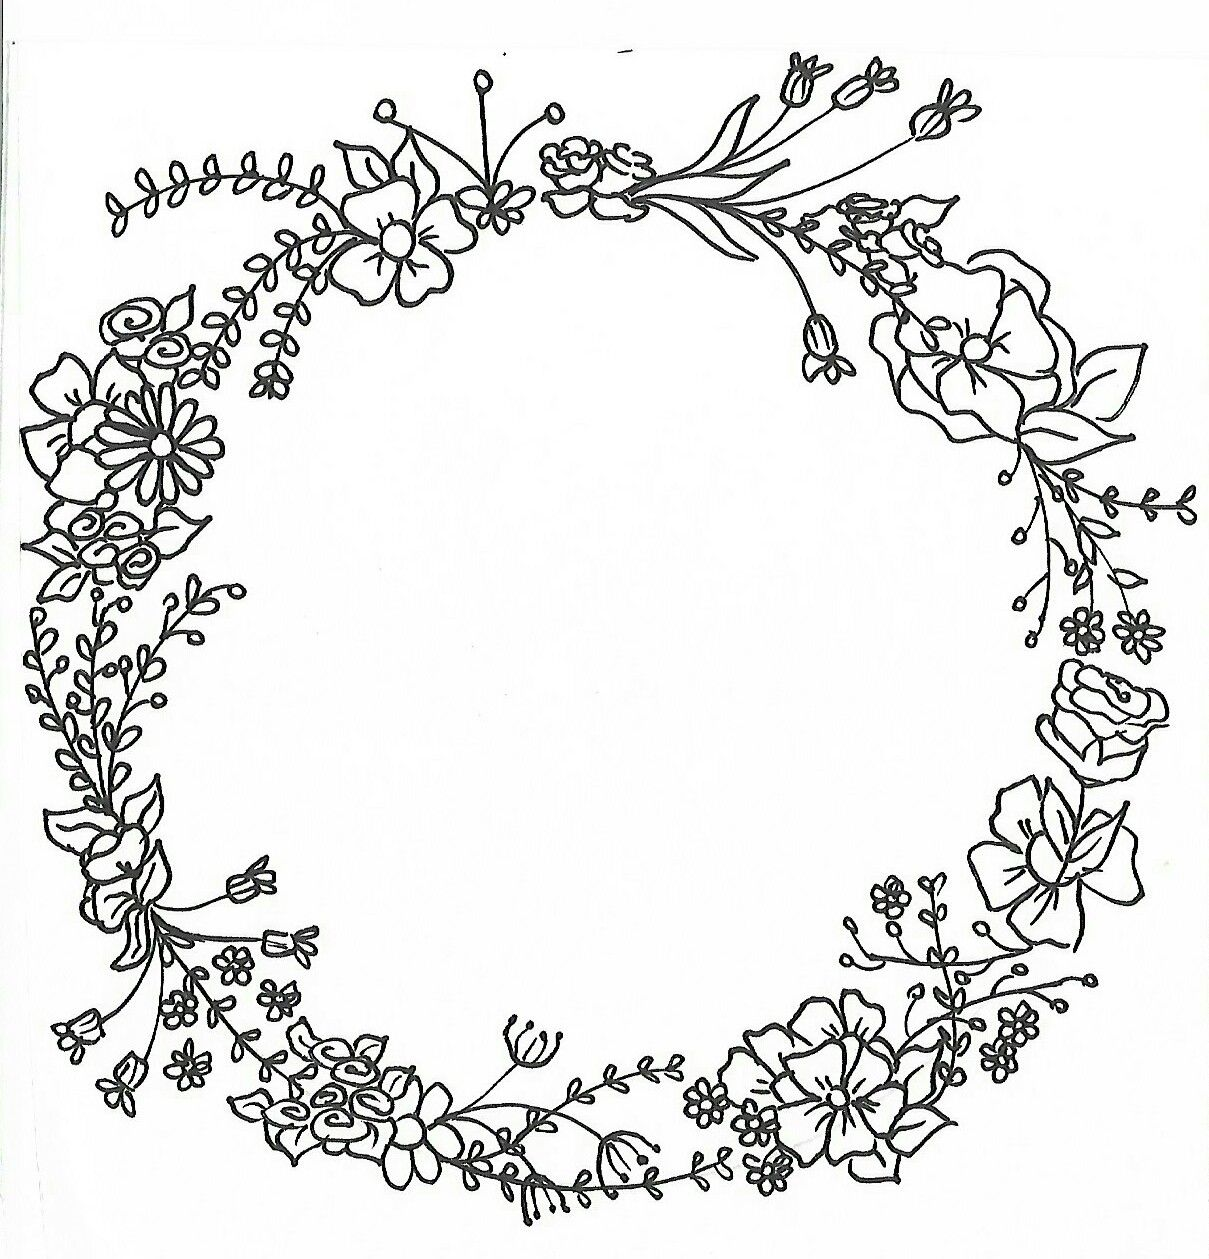 Wreath Mandalas For Paint Hand drawing hand drawn Flowers drawing ...